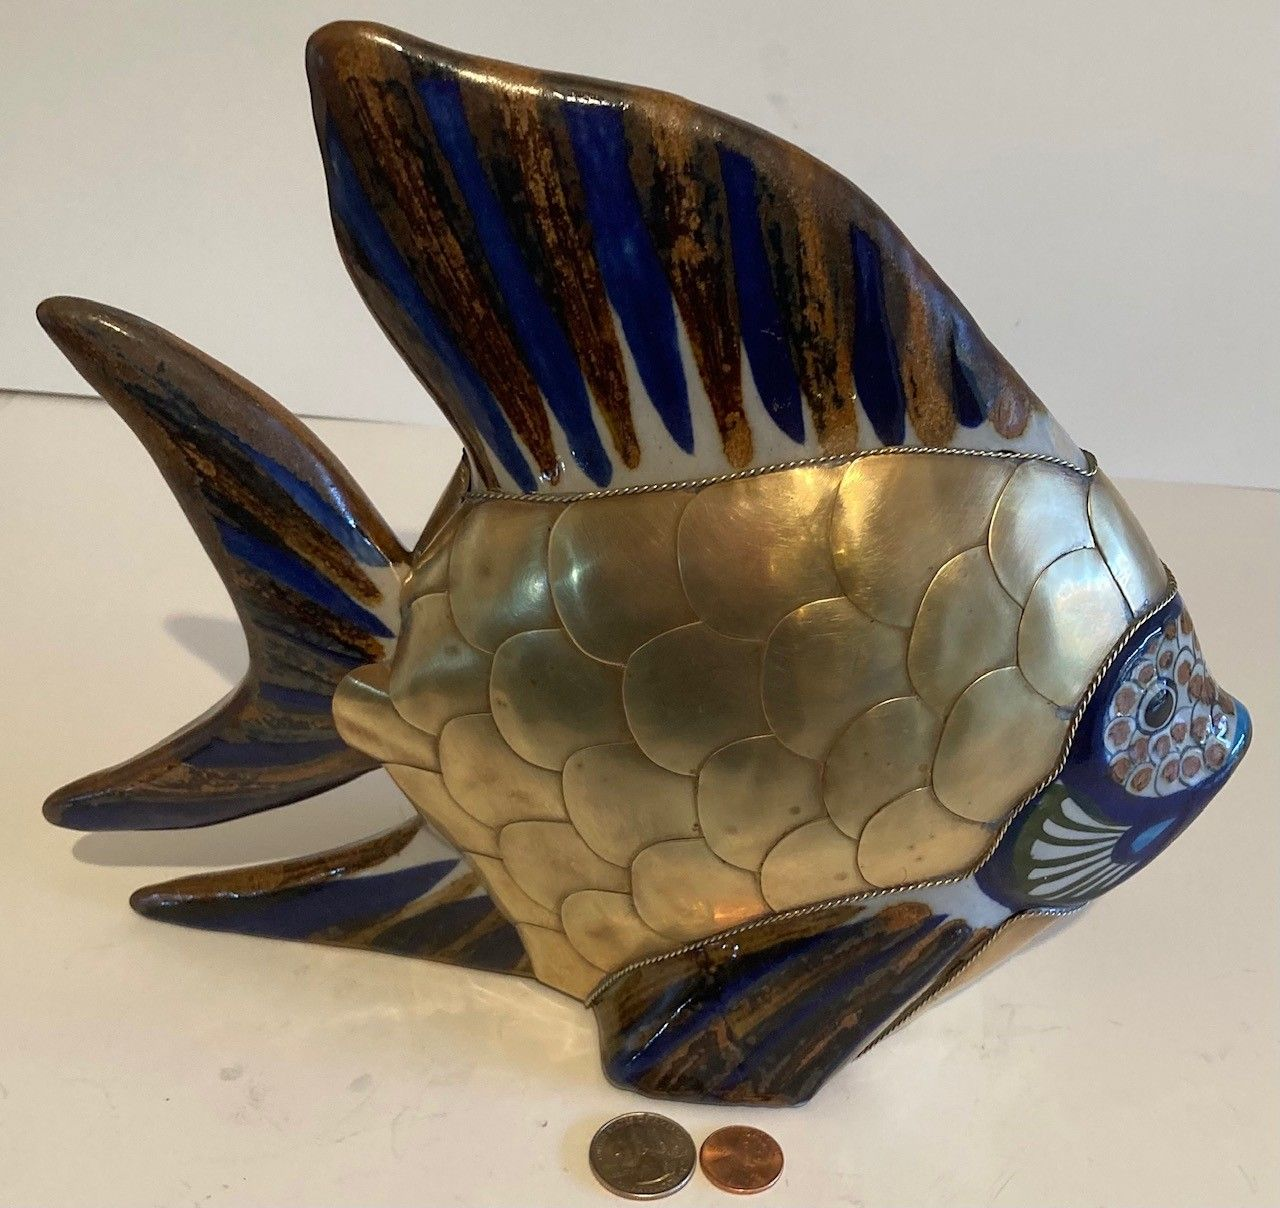 """Vintage Bras and Porcelain Fish, Angel Fish, Large Size, Heavy Duty, 11"""" x 9 1/2"""" Quality, Home Decor, Table Display, Shelf Display, Really Nice"""